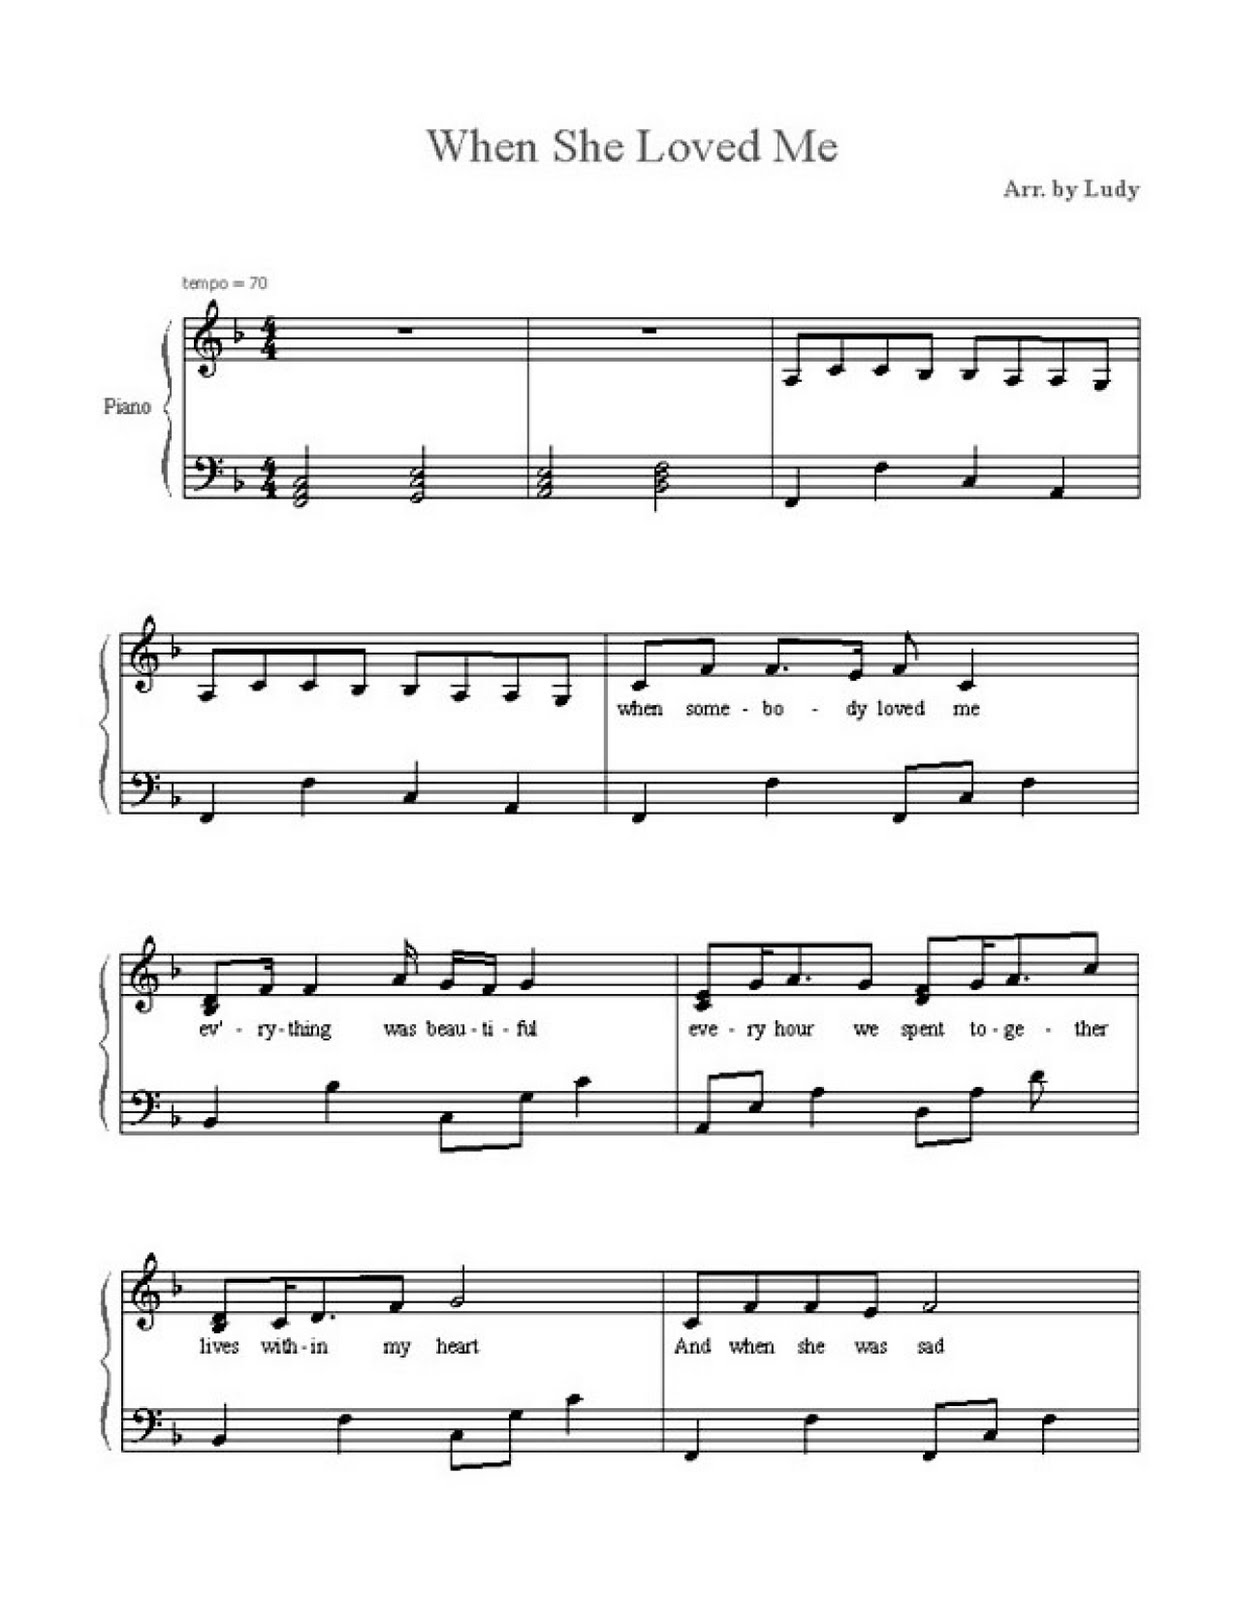 Jessie from toy story bedding - Here S The Music Sheet For The Toy Story 2 Theme For Jessie It Can Played And Sang For Your Mother Sister Aunt And Or Bestfriend